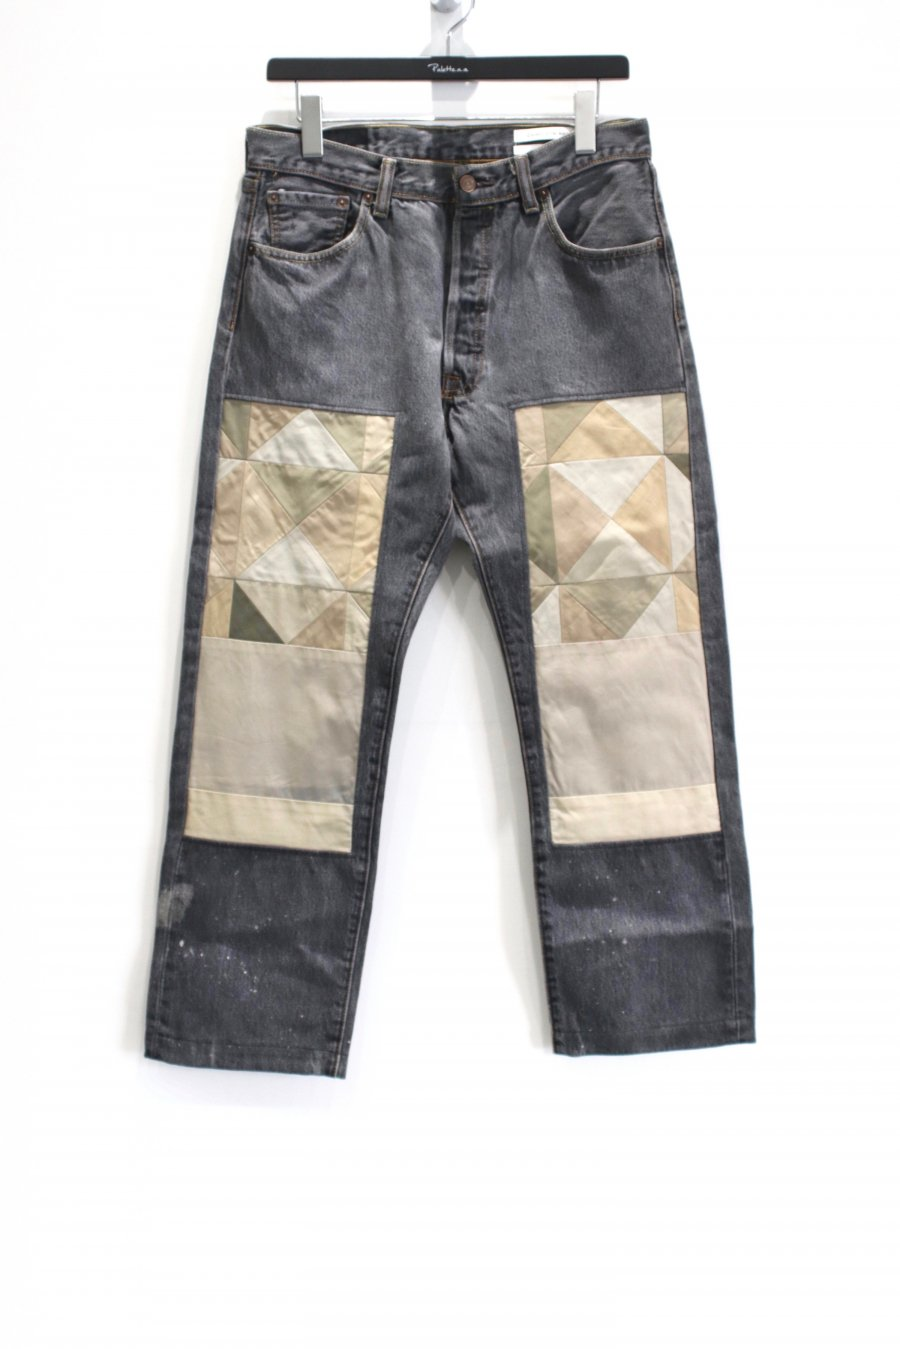 Children of the discordance  NY VINTAGE TRENCH DENIM 21aw-2<img class='new_mark_img2' src='https://img.shop-pro.jp/img/new/icons15.gif' style='border:none;display:inline;margin:0px;padding:0px;width:auto;' />